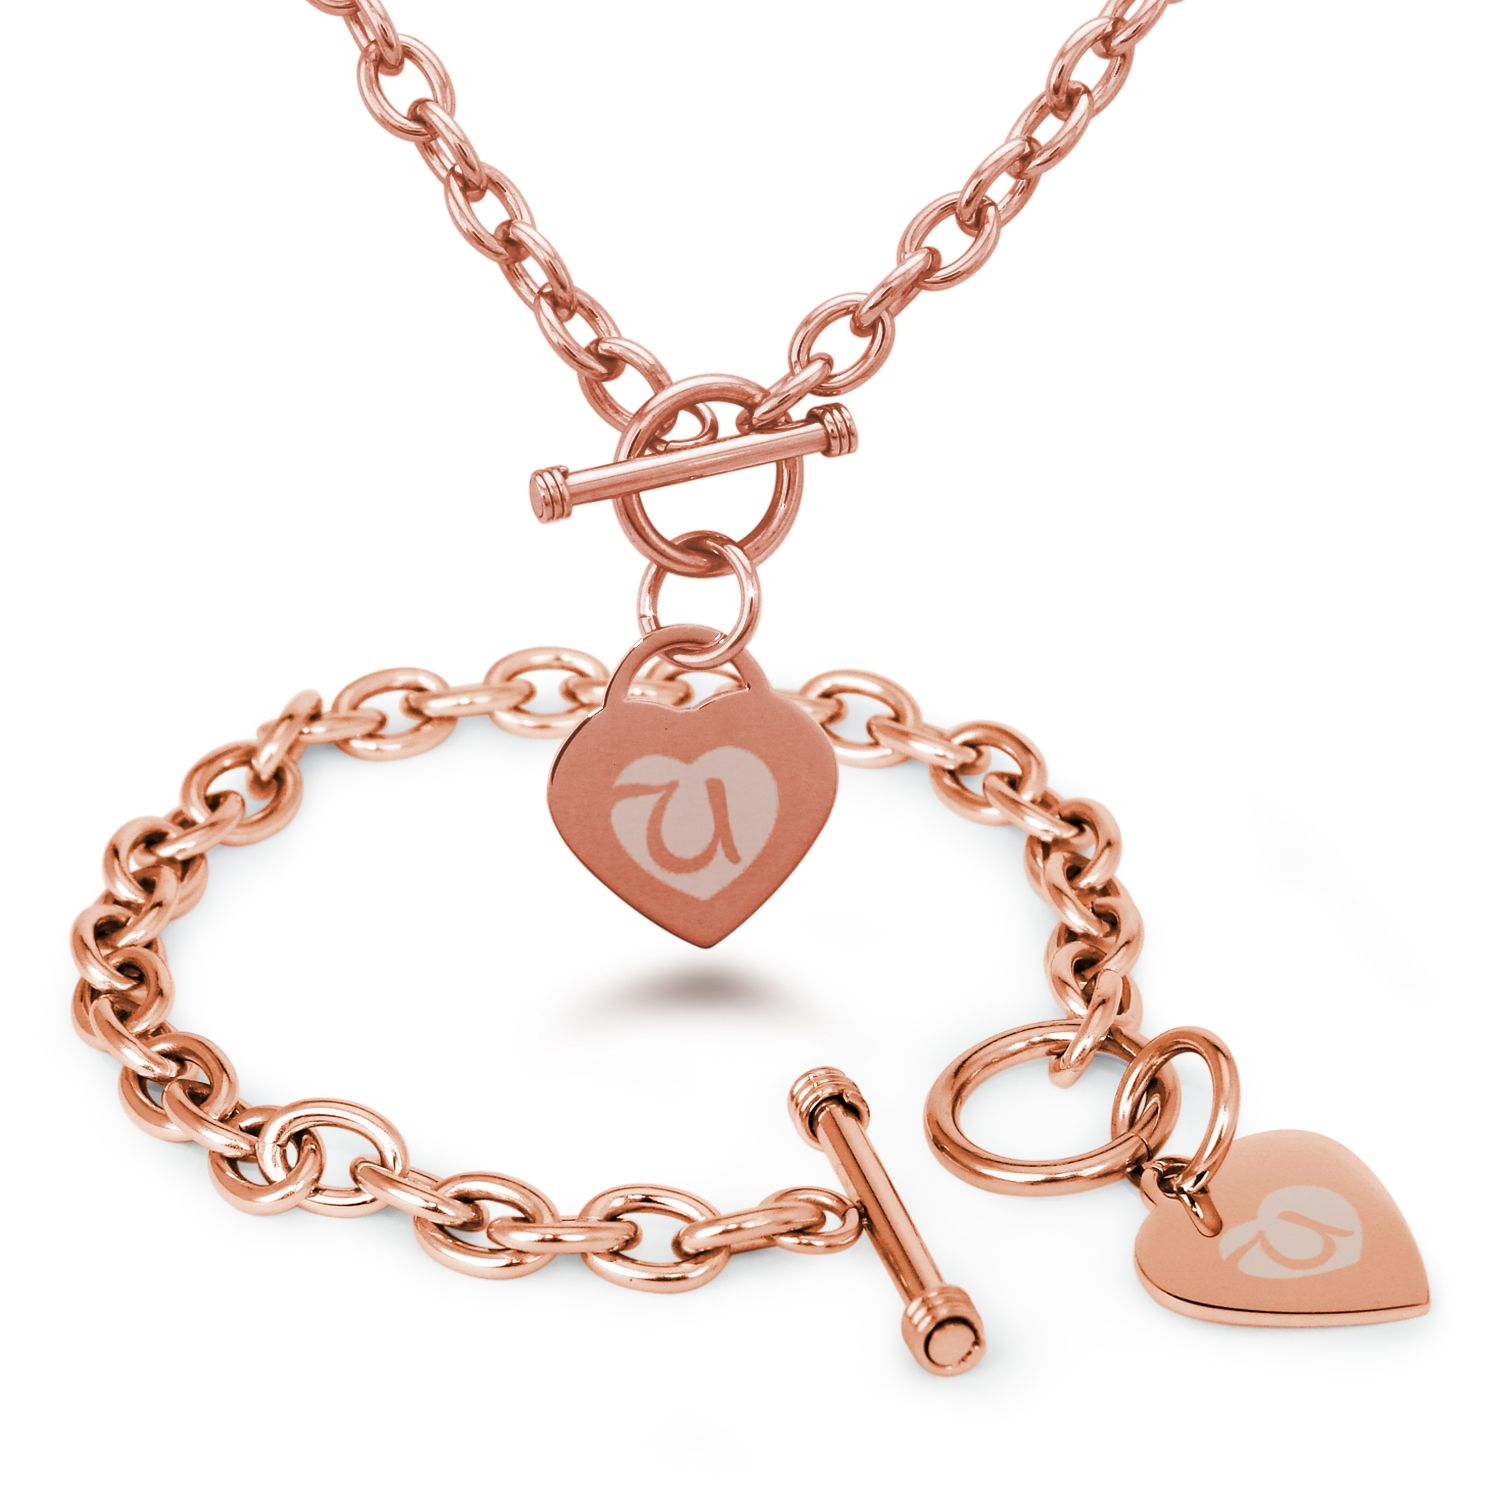 Tioneer Stainless Steel Alphabet Letter U Initial Heart Charm